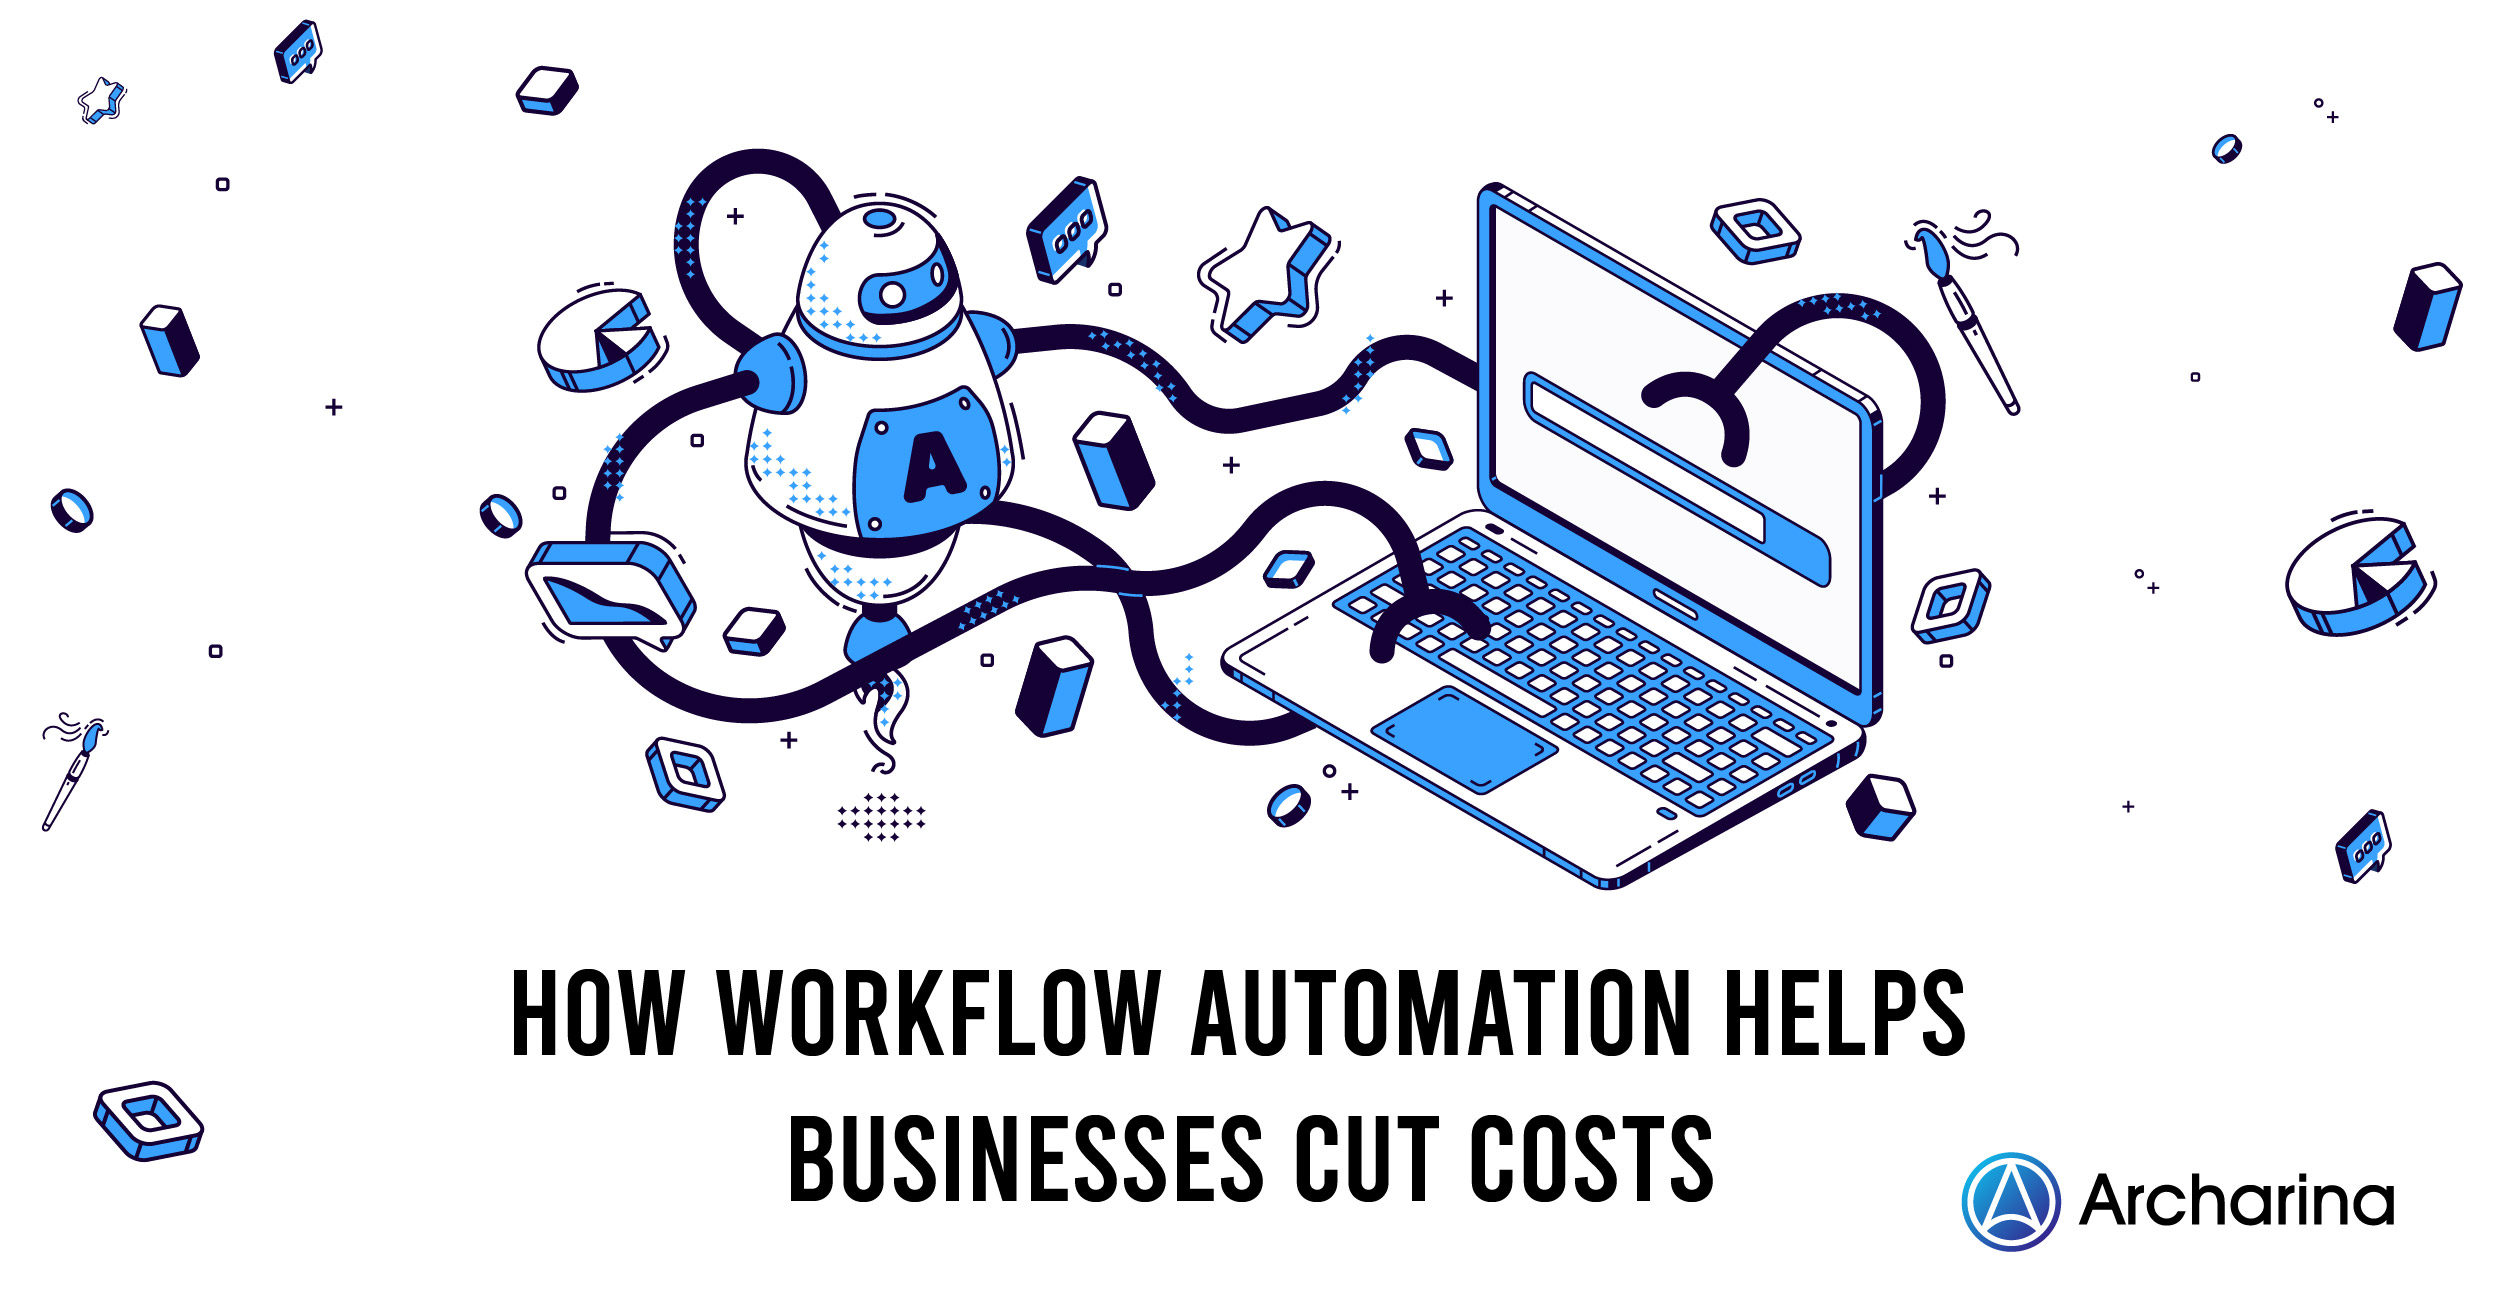 How Workflow Automation Helps Businesses Cut Costs